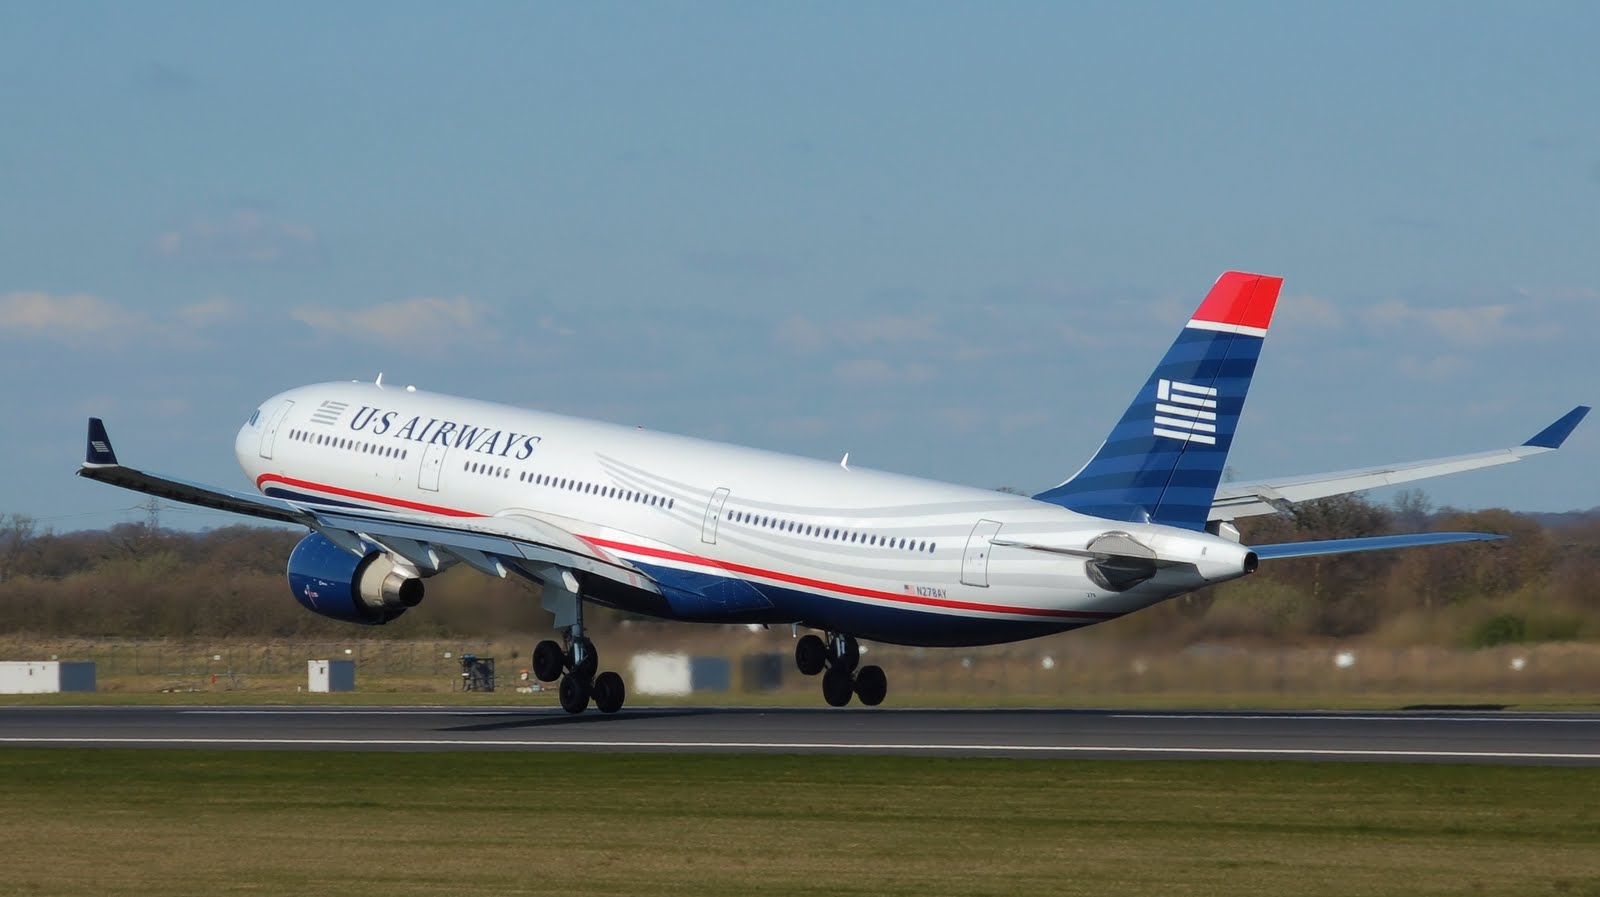 http://4.bp.blogspot.com/-Yyw0Pa3jaLI/TgSbSDDs6sI/AAAAAAAAFvo/R49KAqzgHsg/s1600/a330-300_us_airways_touch_down_aircraft-wallpaper.jpg